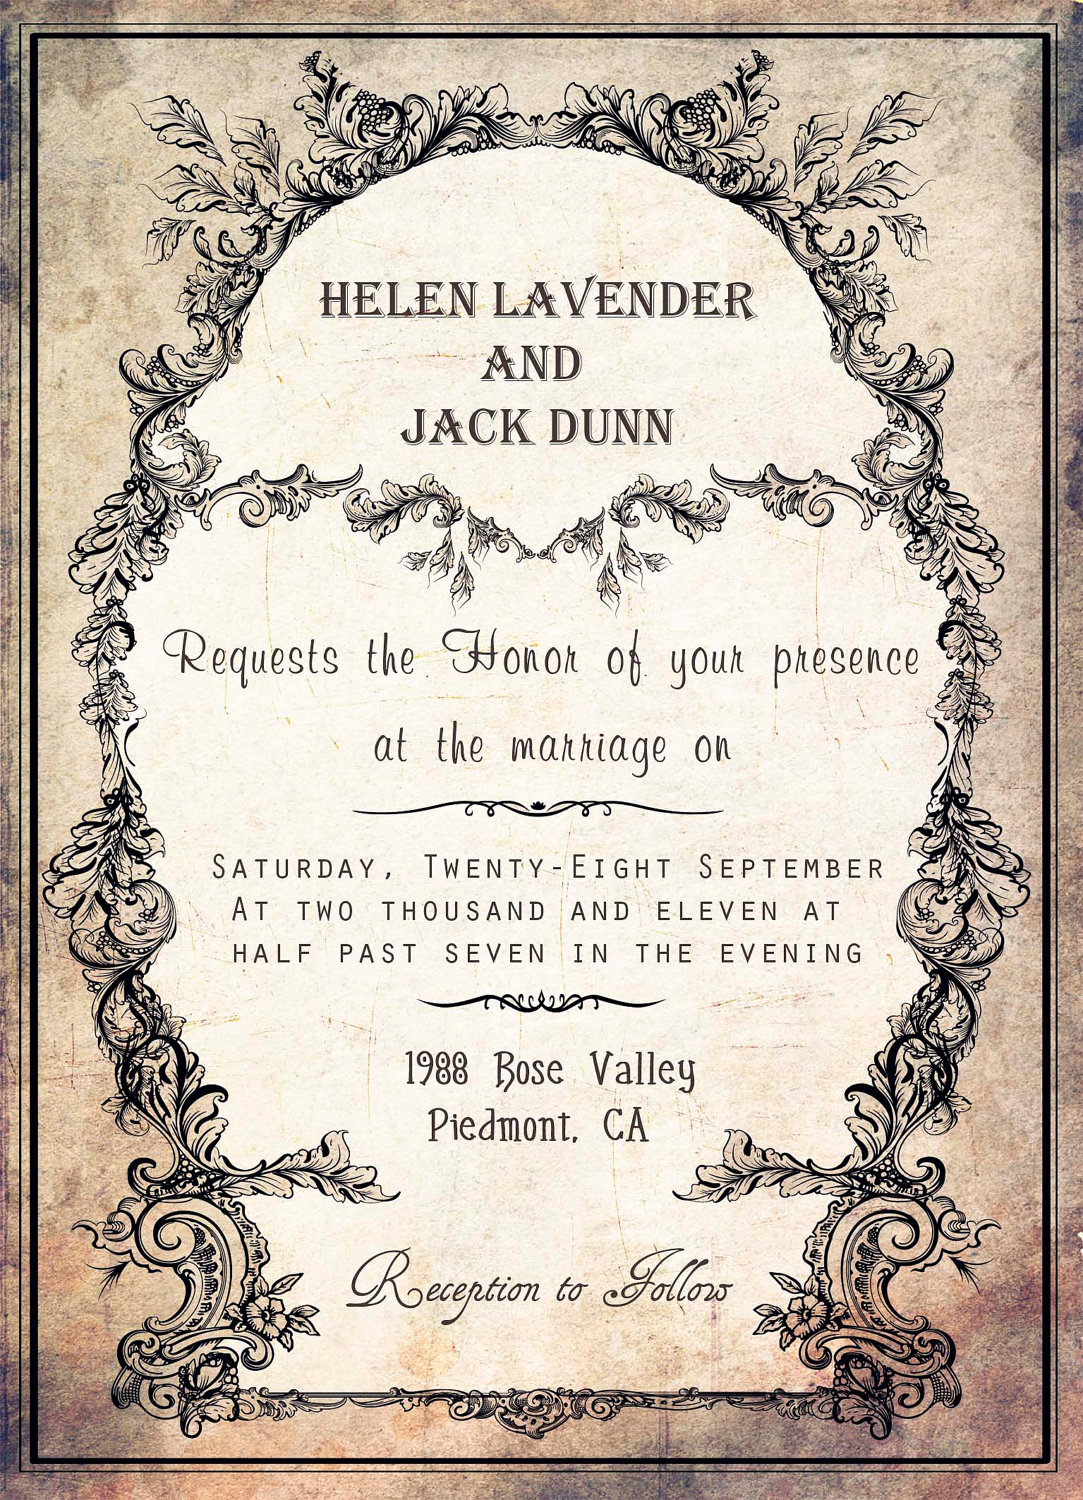 Wedding Invitation Template Peellandfmtk - Wedding invitation templates: western wedding invitation templates